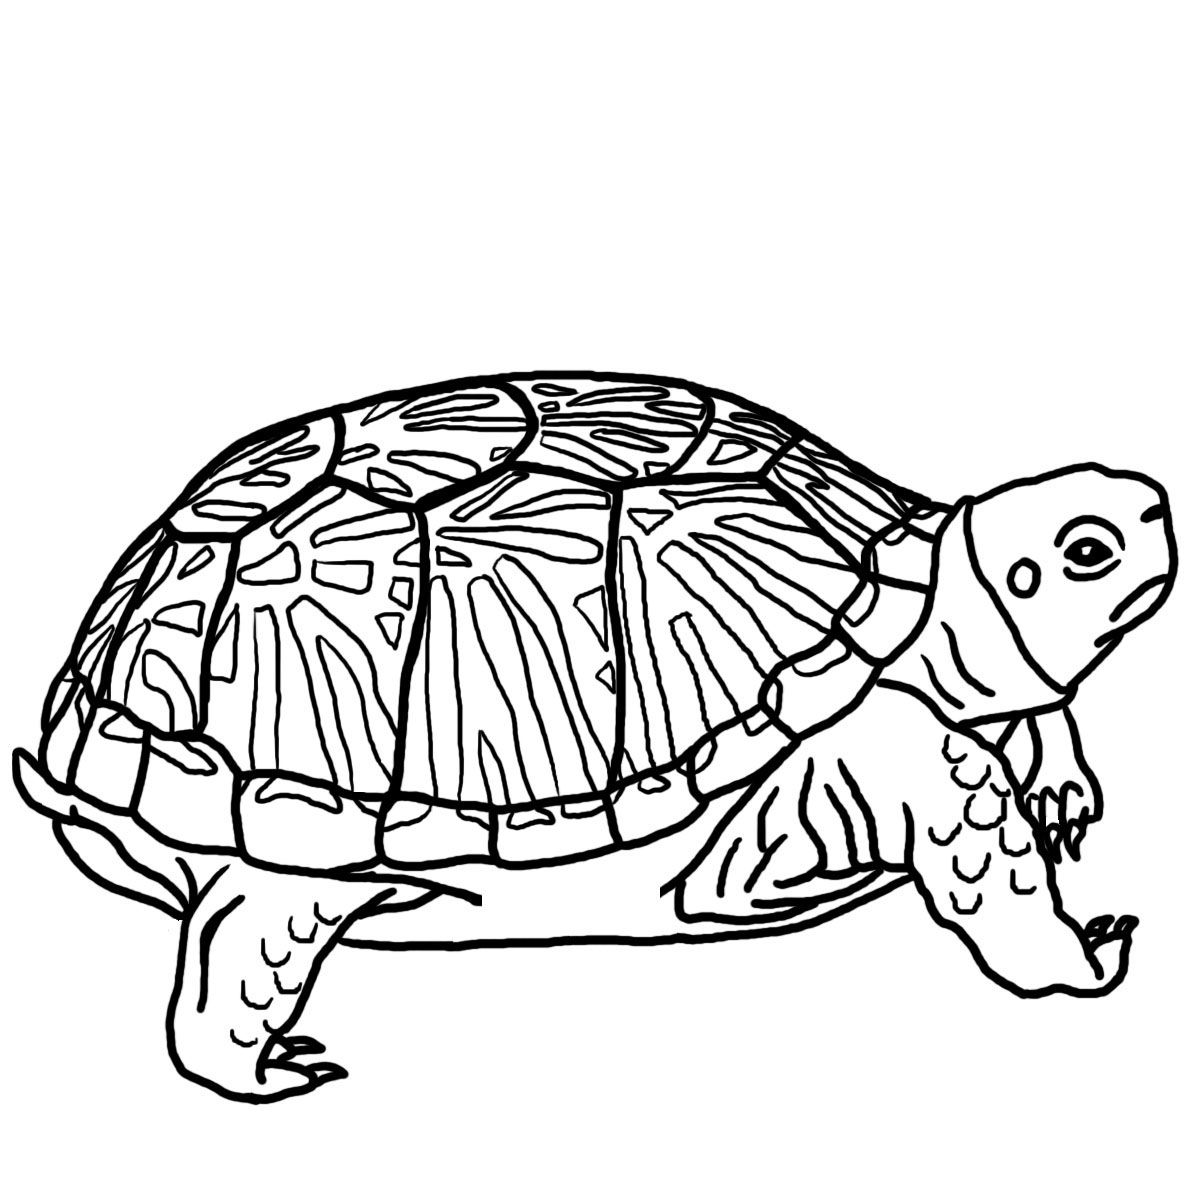 Free Printable Turtle Coloring Pages For Kids | Amphibians & Sea ...